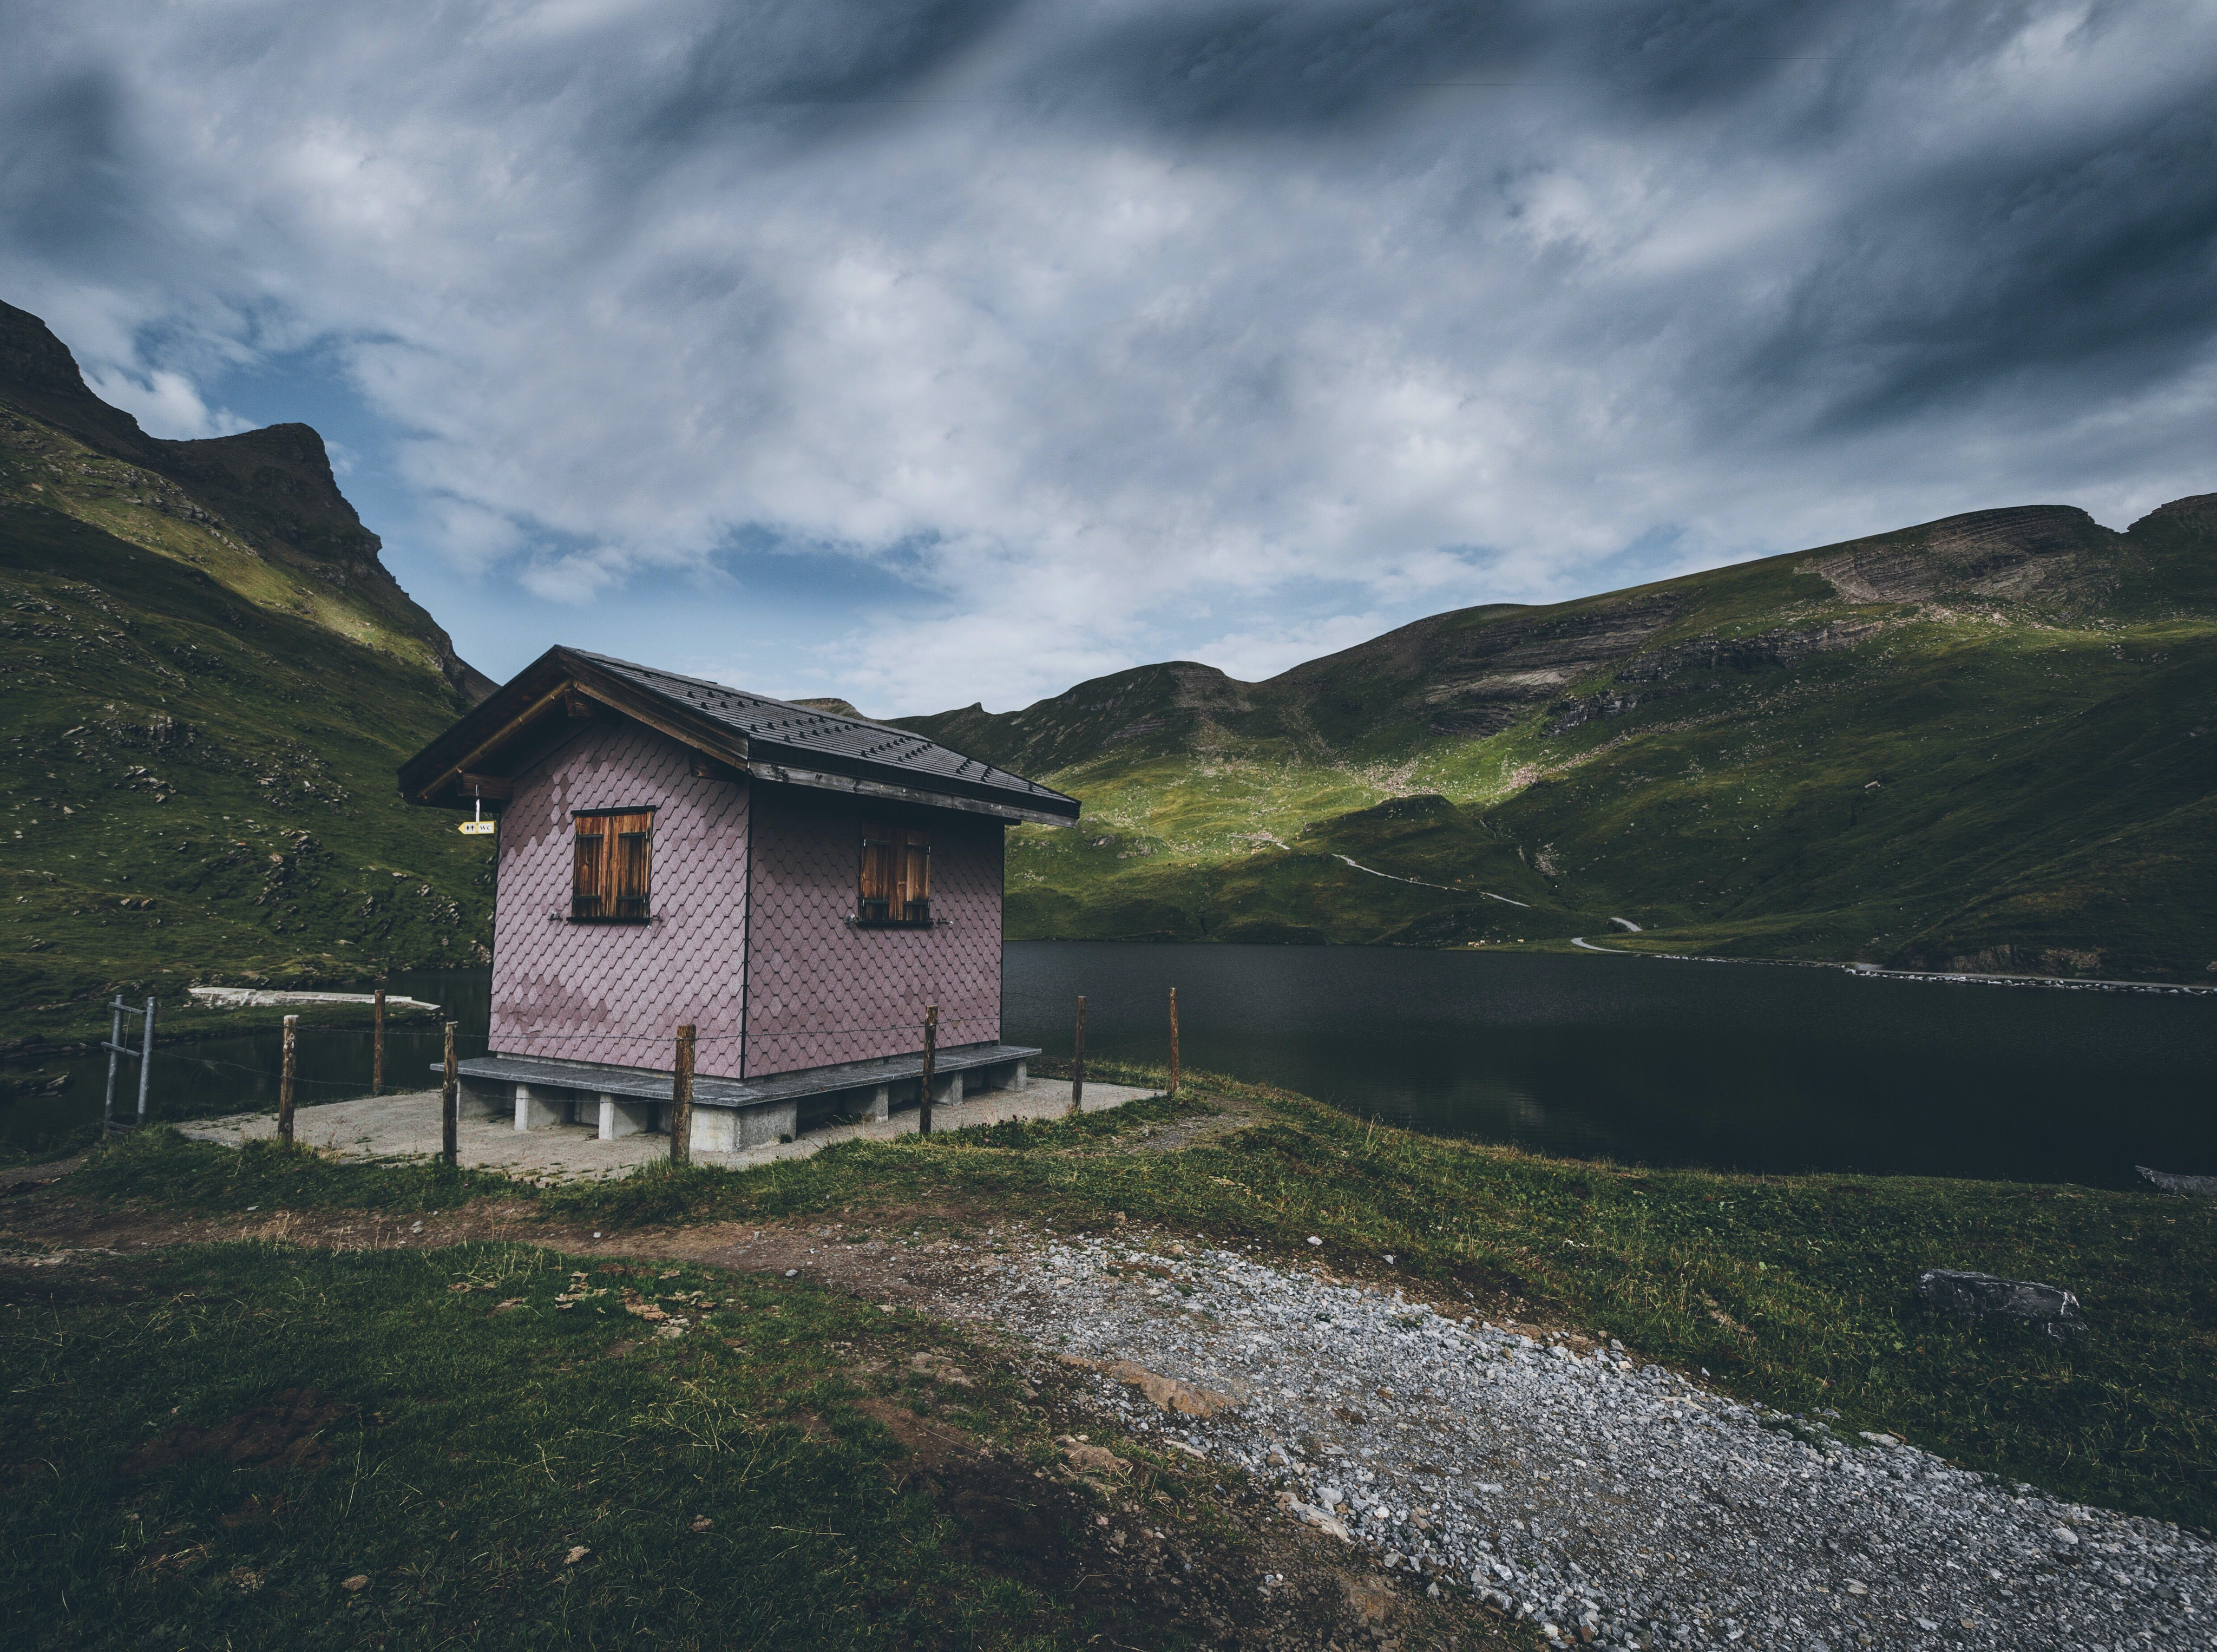 red and gray wooden house near lake surrounded by mountains